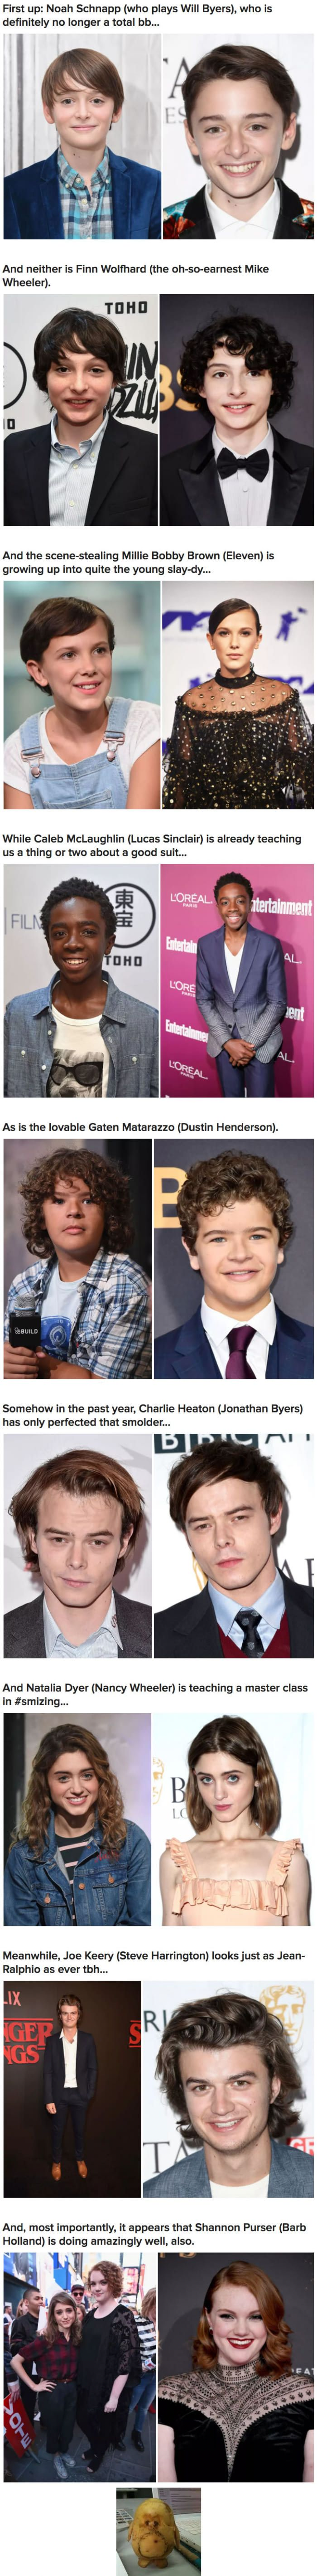 """It's A Year After The """"Stranger Things"""" Series Premiere, Spot The Difference Of The Cast"""